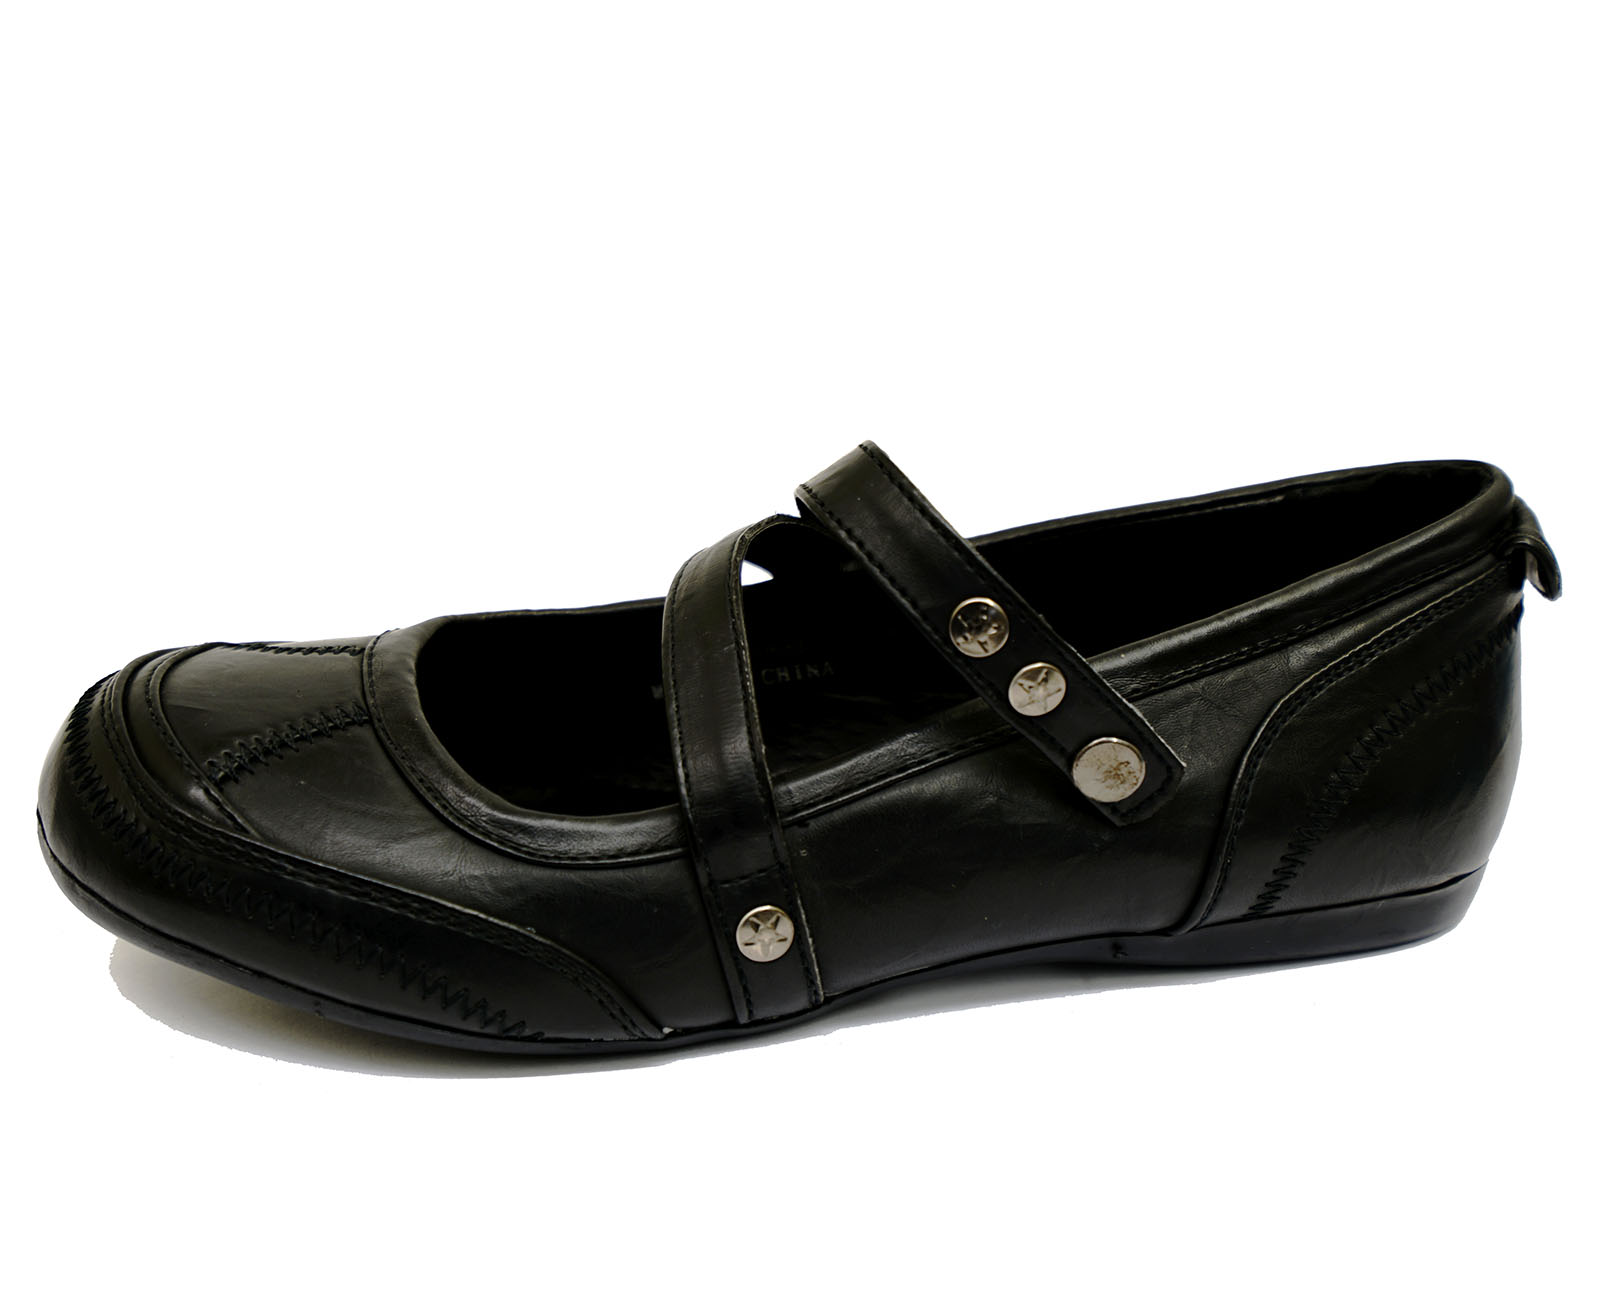 WOMENS BLACK SLIP-ON FLAT CASUAL COMFY WORK STRAPPY SHOES PLIMSOLL PUMPS UK 3-9 | EBay